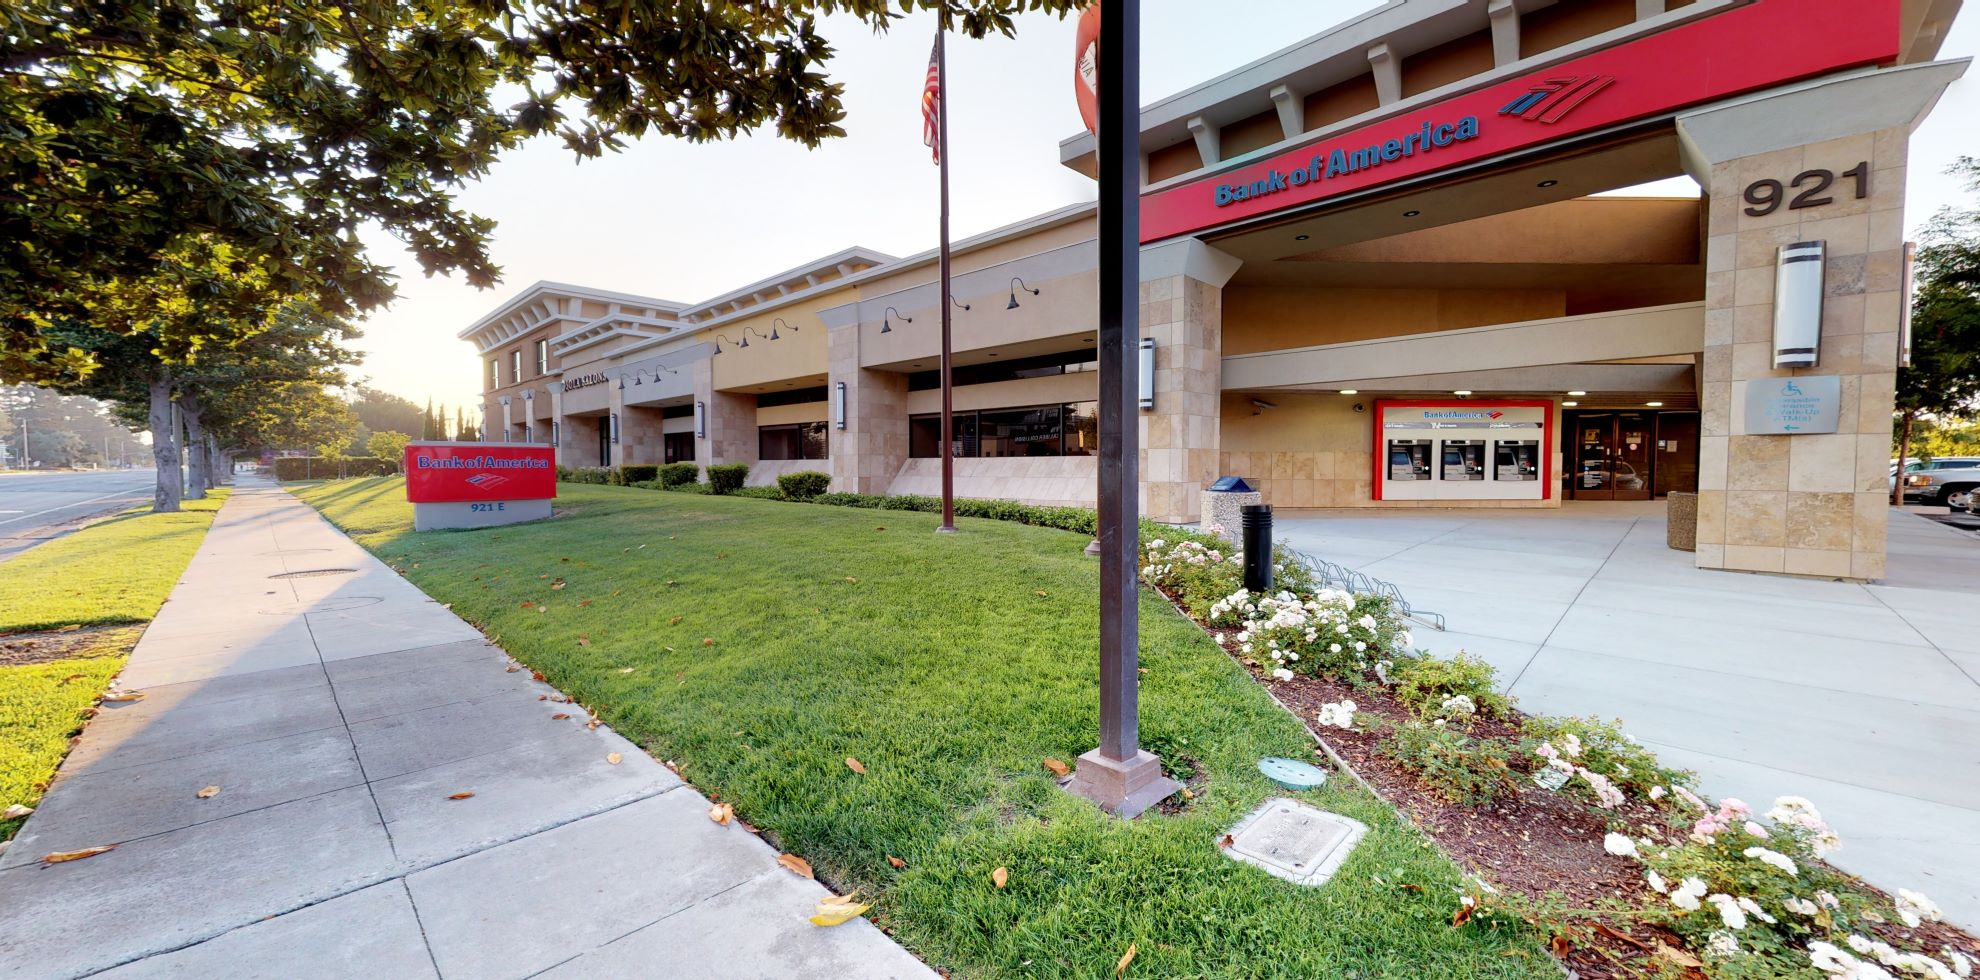 Bank of America financial center with walk-up ATM | 921 E Arques Ave, Sunnyvale, CA 94085